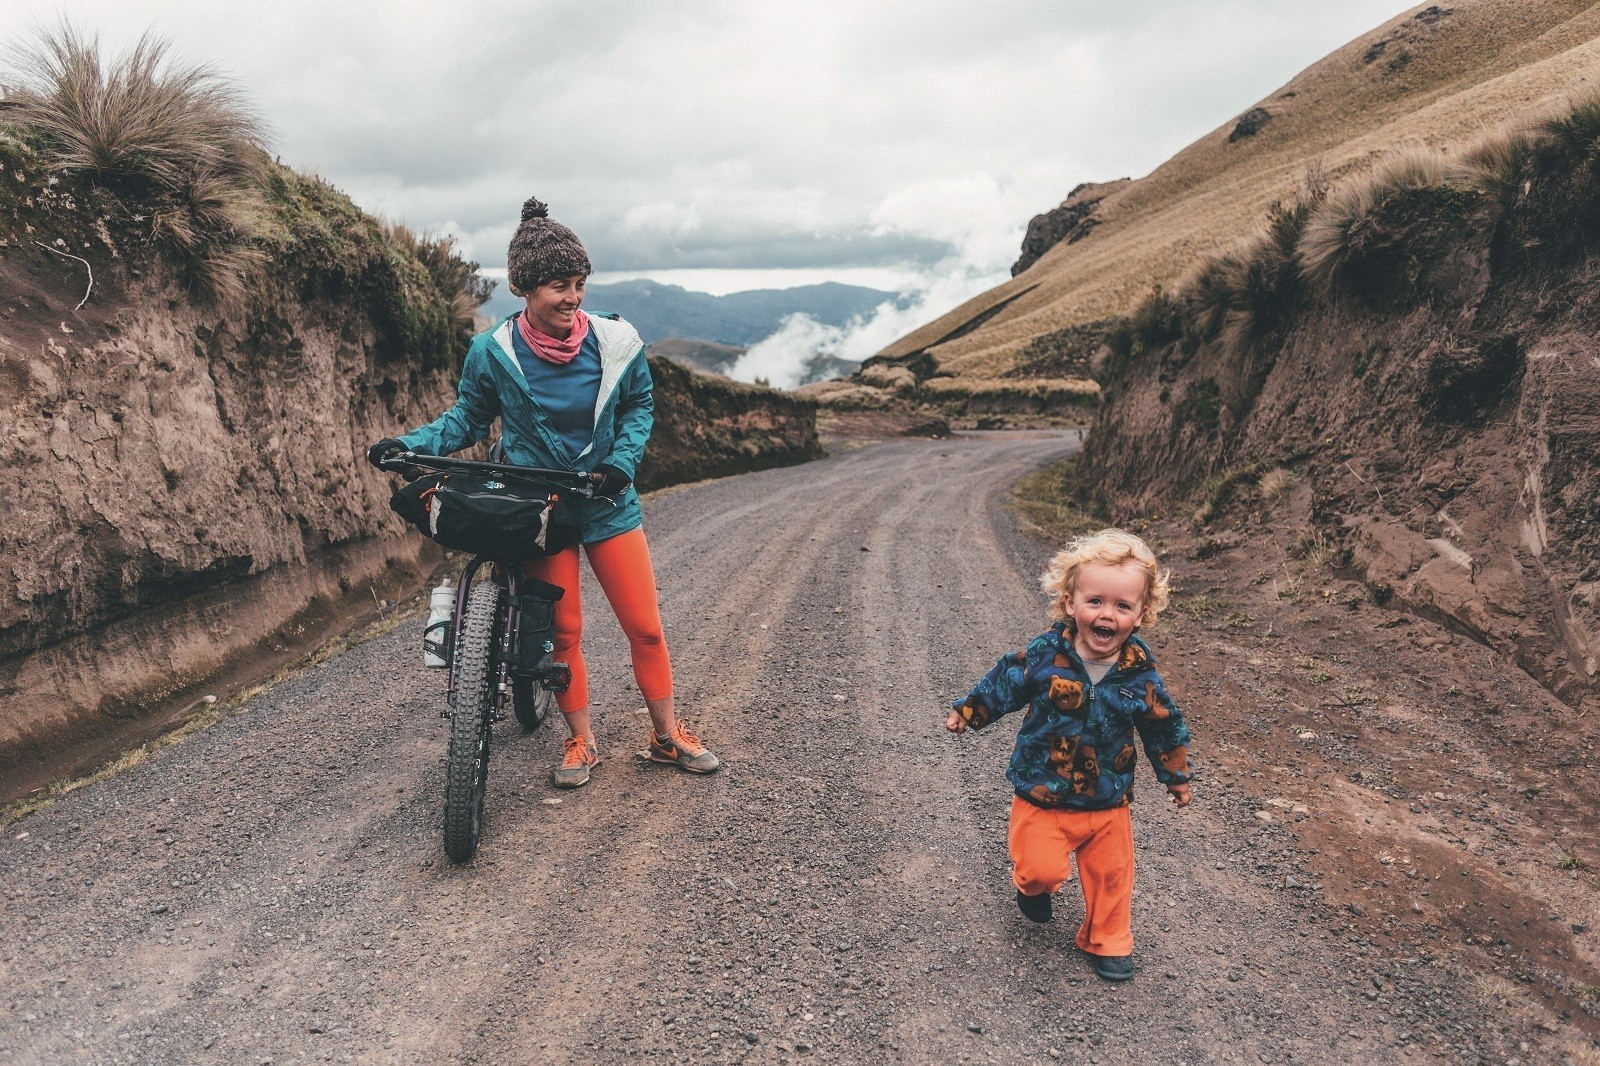 Epic ride: family bikepacking in Ecuador